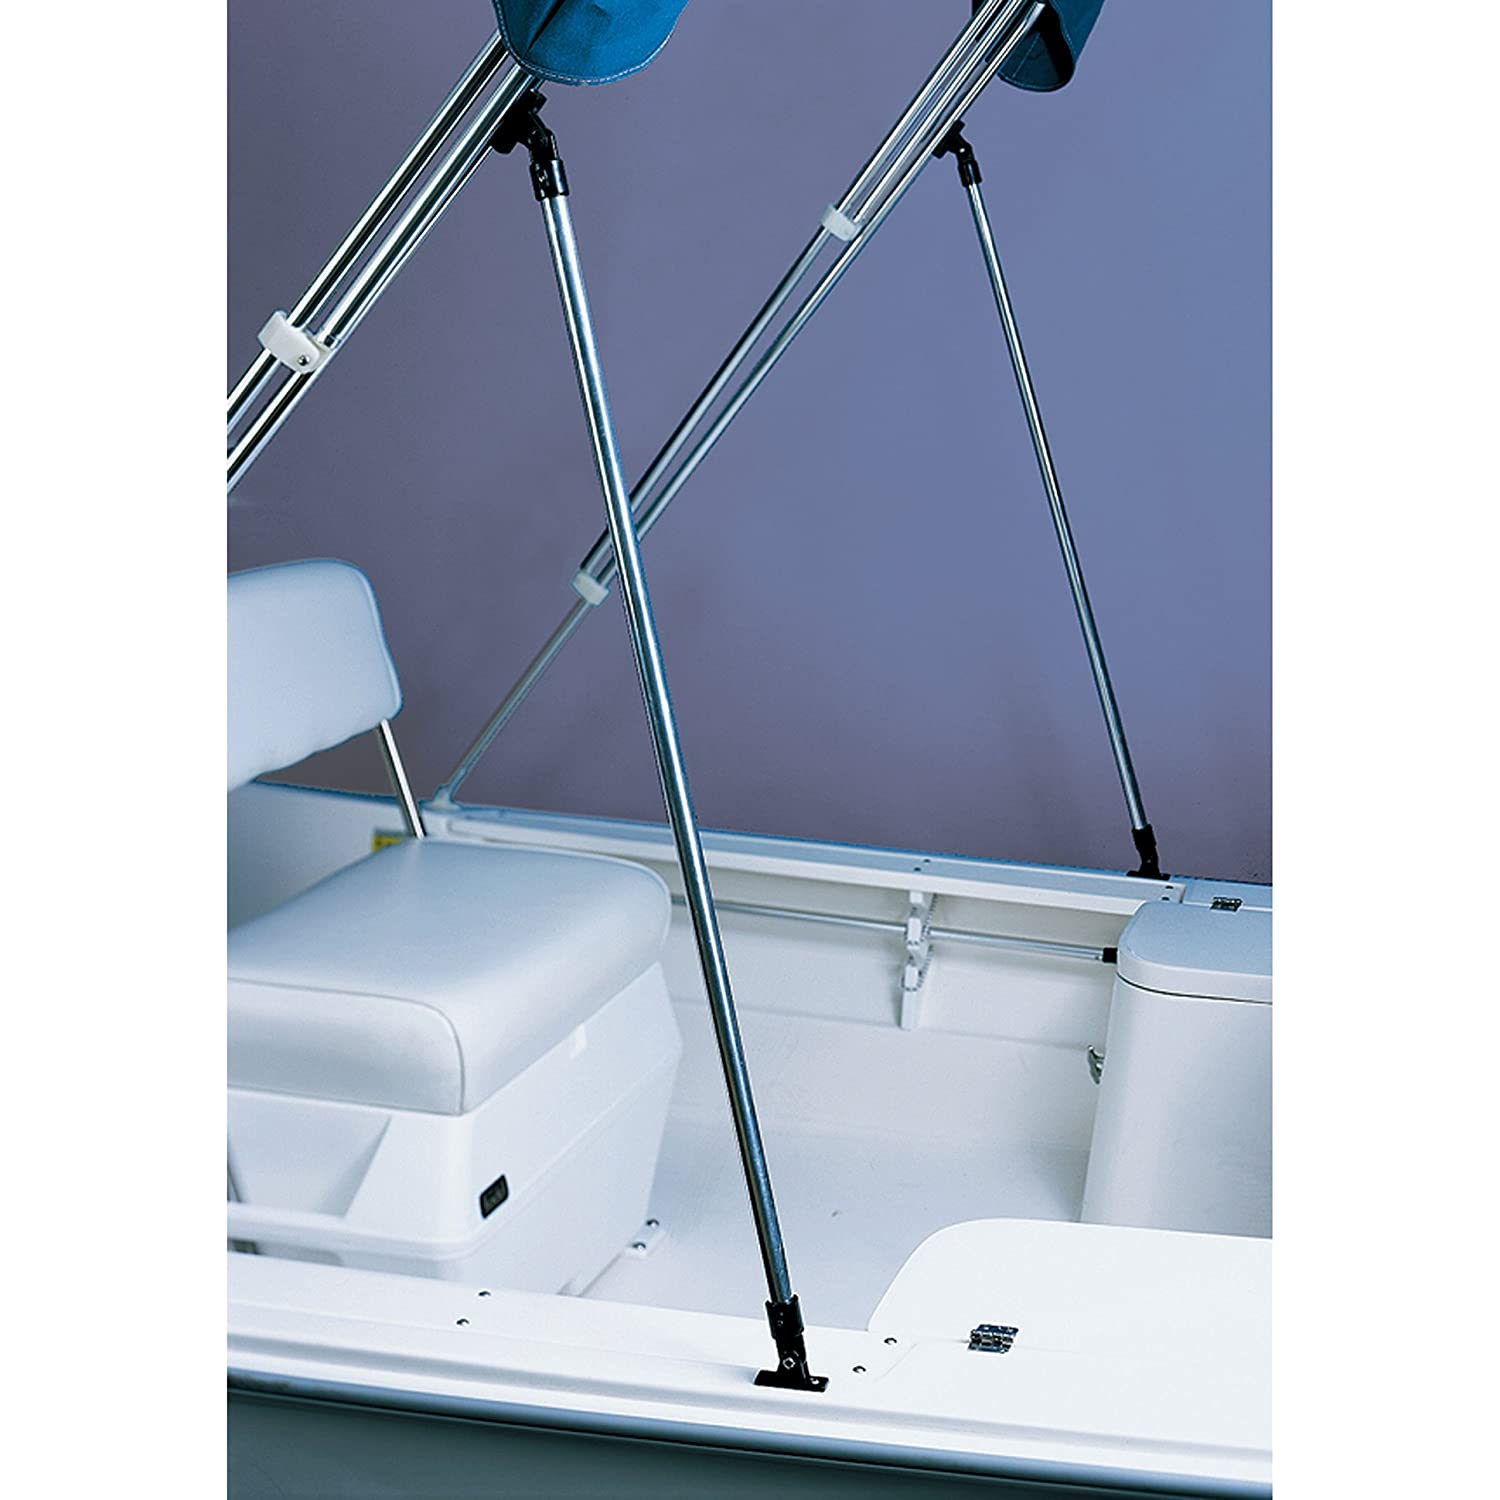 Atwood (10639-5) Bimini Top Support Pole EB-5701140